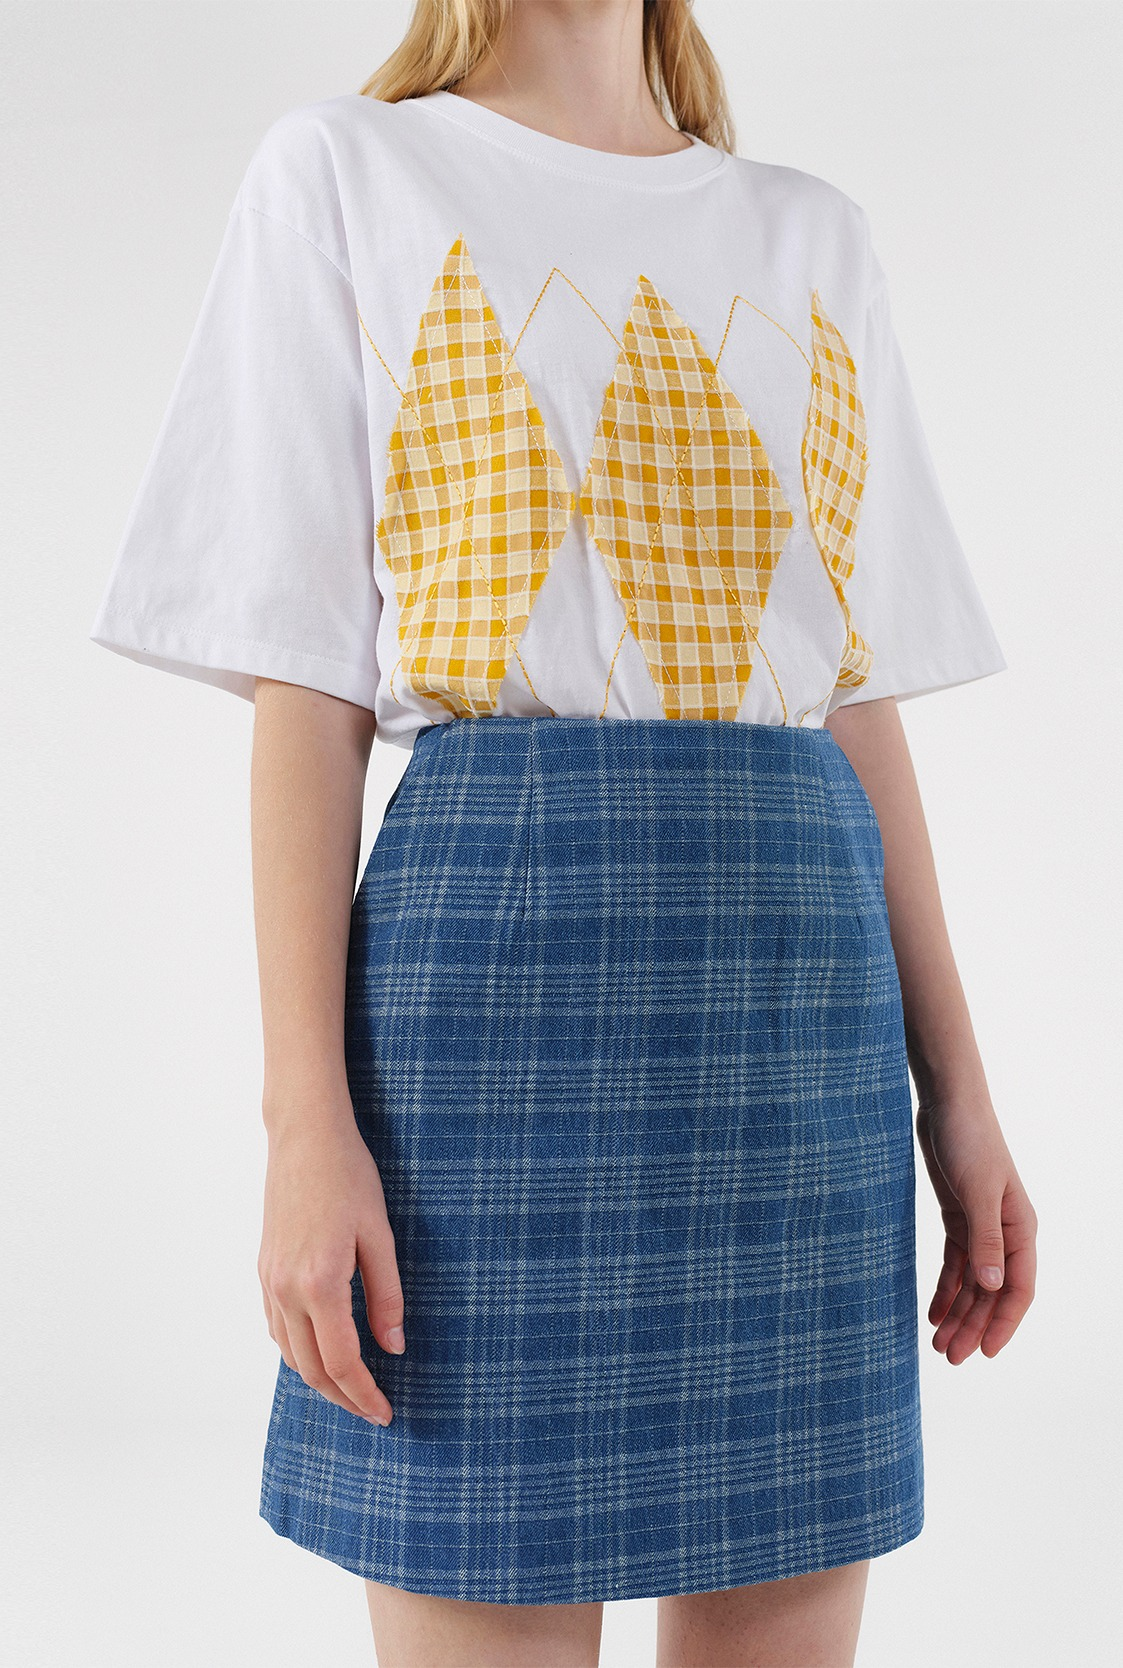 R CHECK DENIM MINI SKIRT